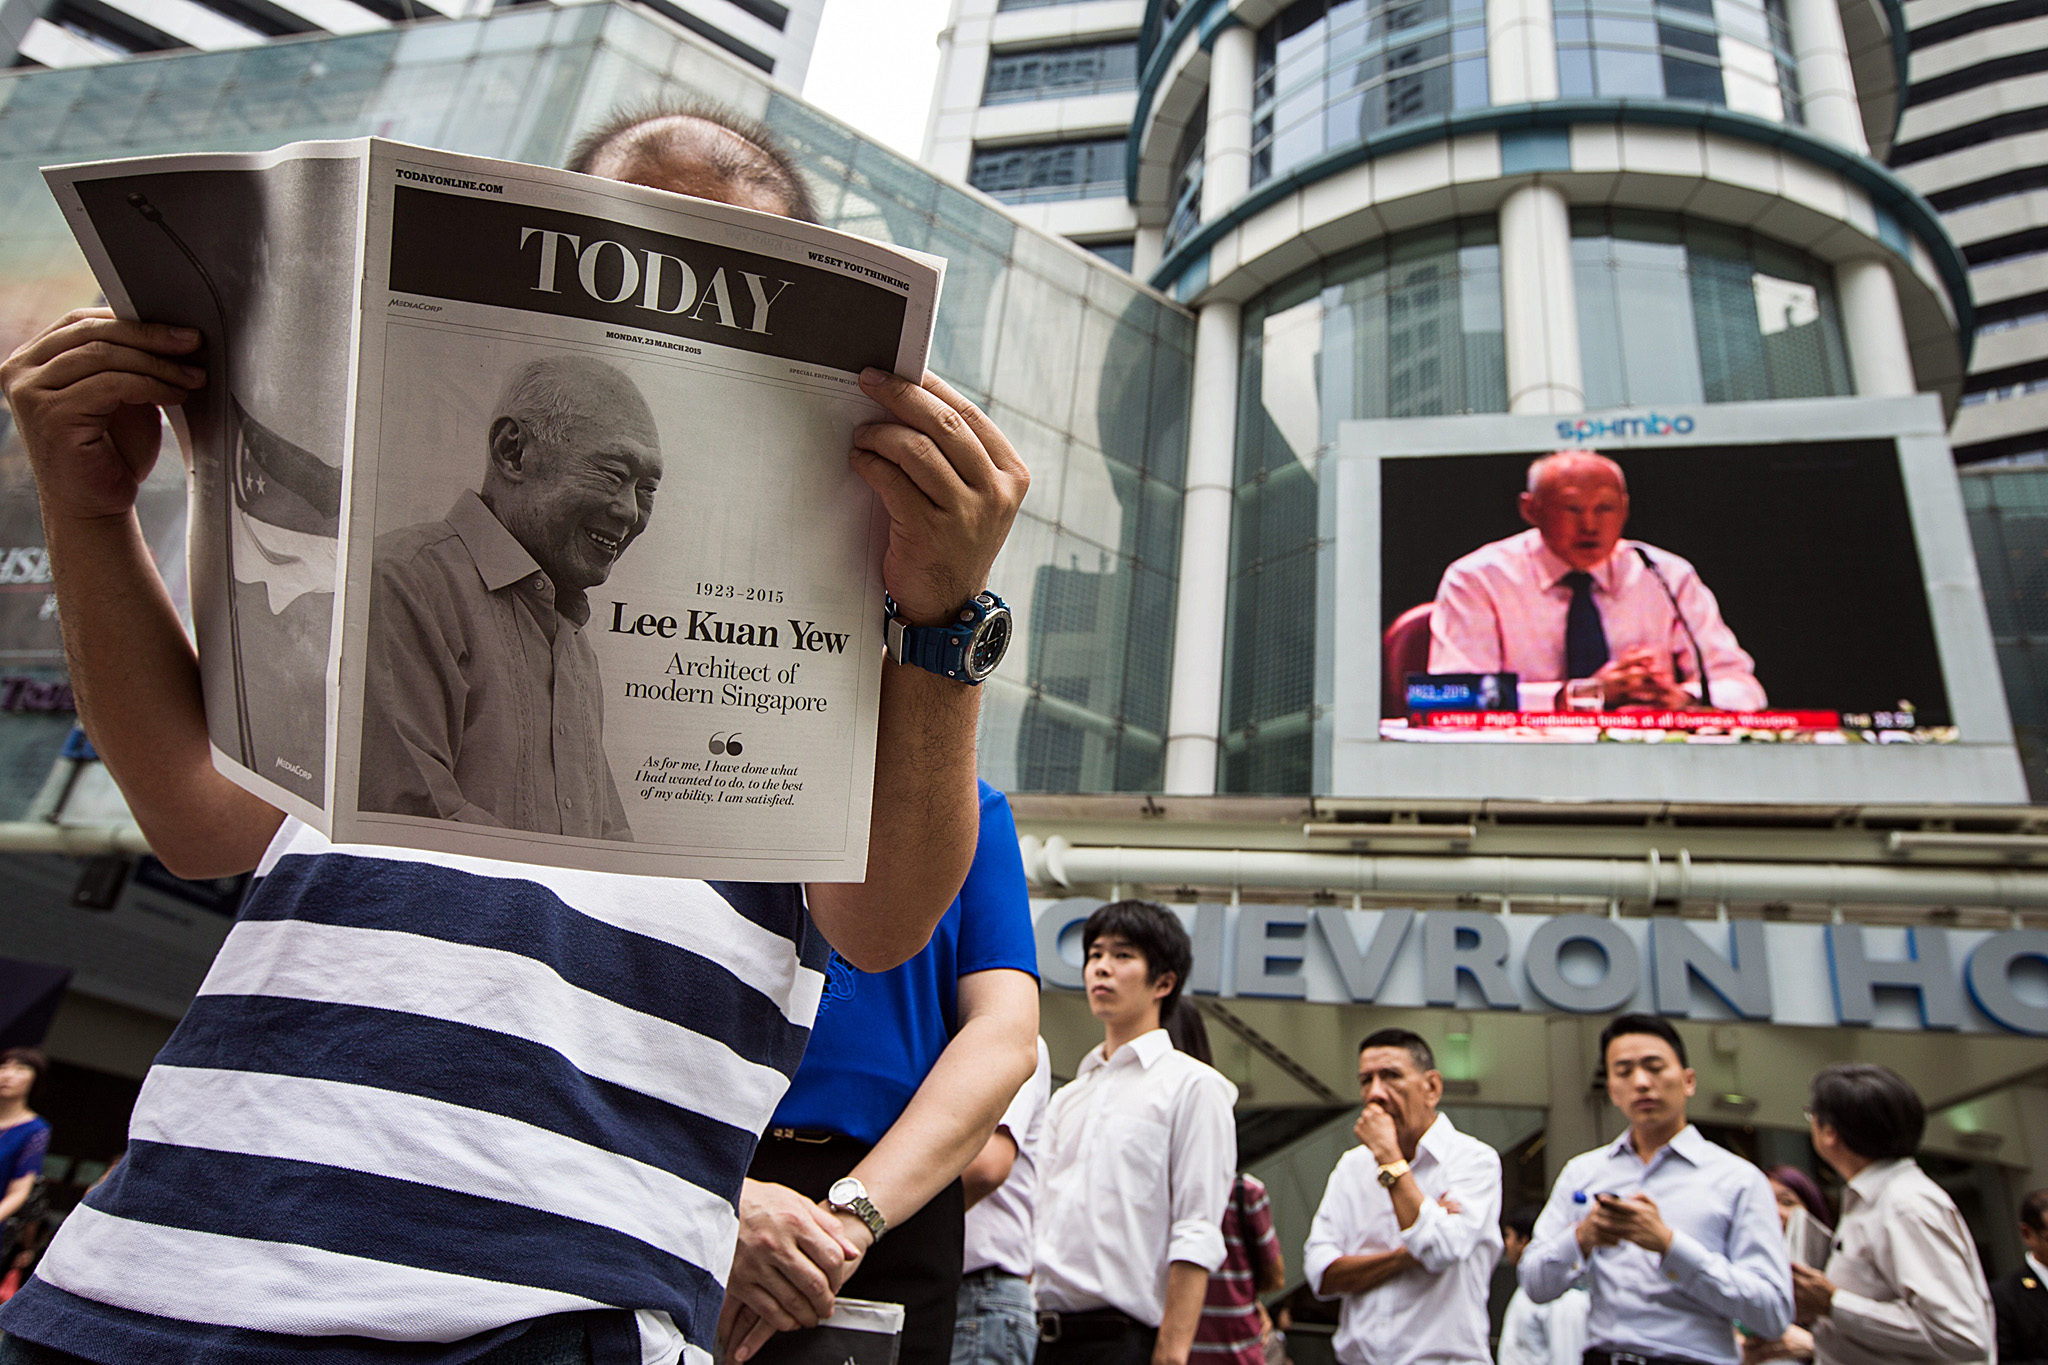 Reactions To The Death Of Singapore's Founding Prime Minister Lee Kuan Yew...A monitor shows coverage of the death of Singapore's first elected Prime Minister Lee Kuan Yew as a man reads a special edition of a Today newspaper, produced by MediaCorp Press Ltd., at Raffles Place in Singapore, on Monday, March 23, 2015. Lee, who helped transform Singapore from a colonial trading center into one of Asia's most prosperous nations, has died. He was 91. Photographer: Nicky Loh/Bloomberg